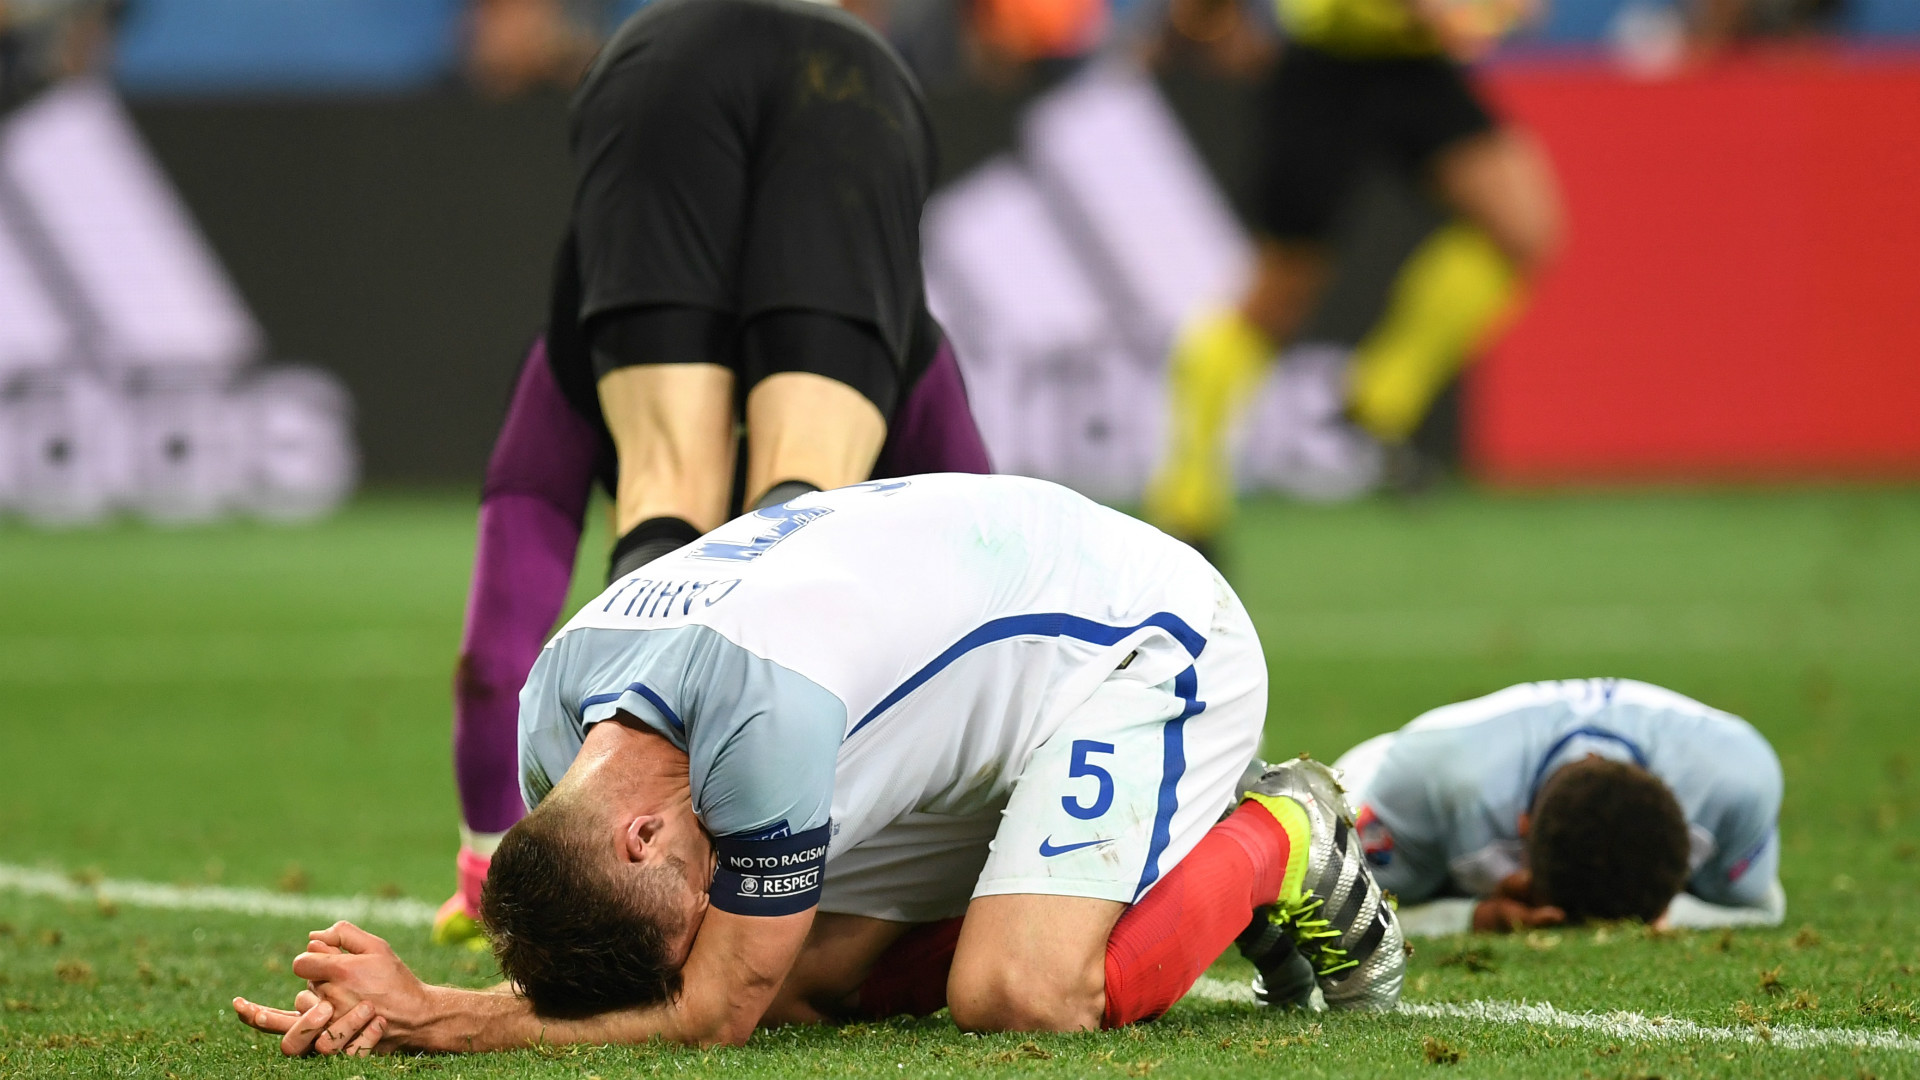 England would hate to lose to Sweden, says Sven-Goran Eriksson